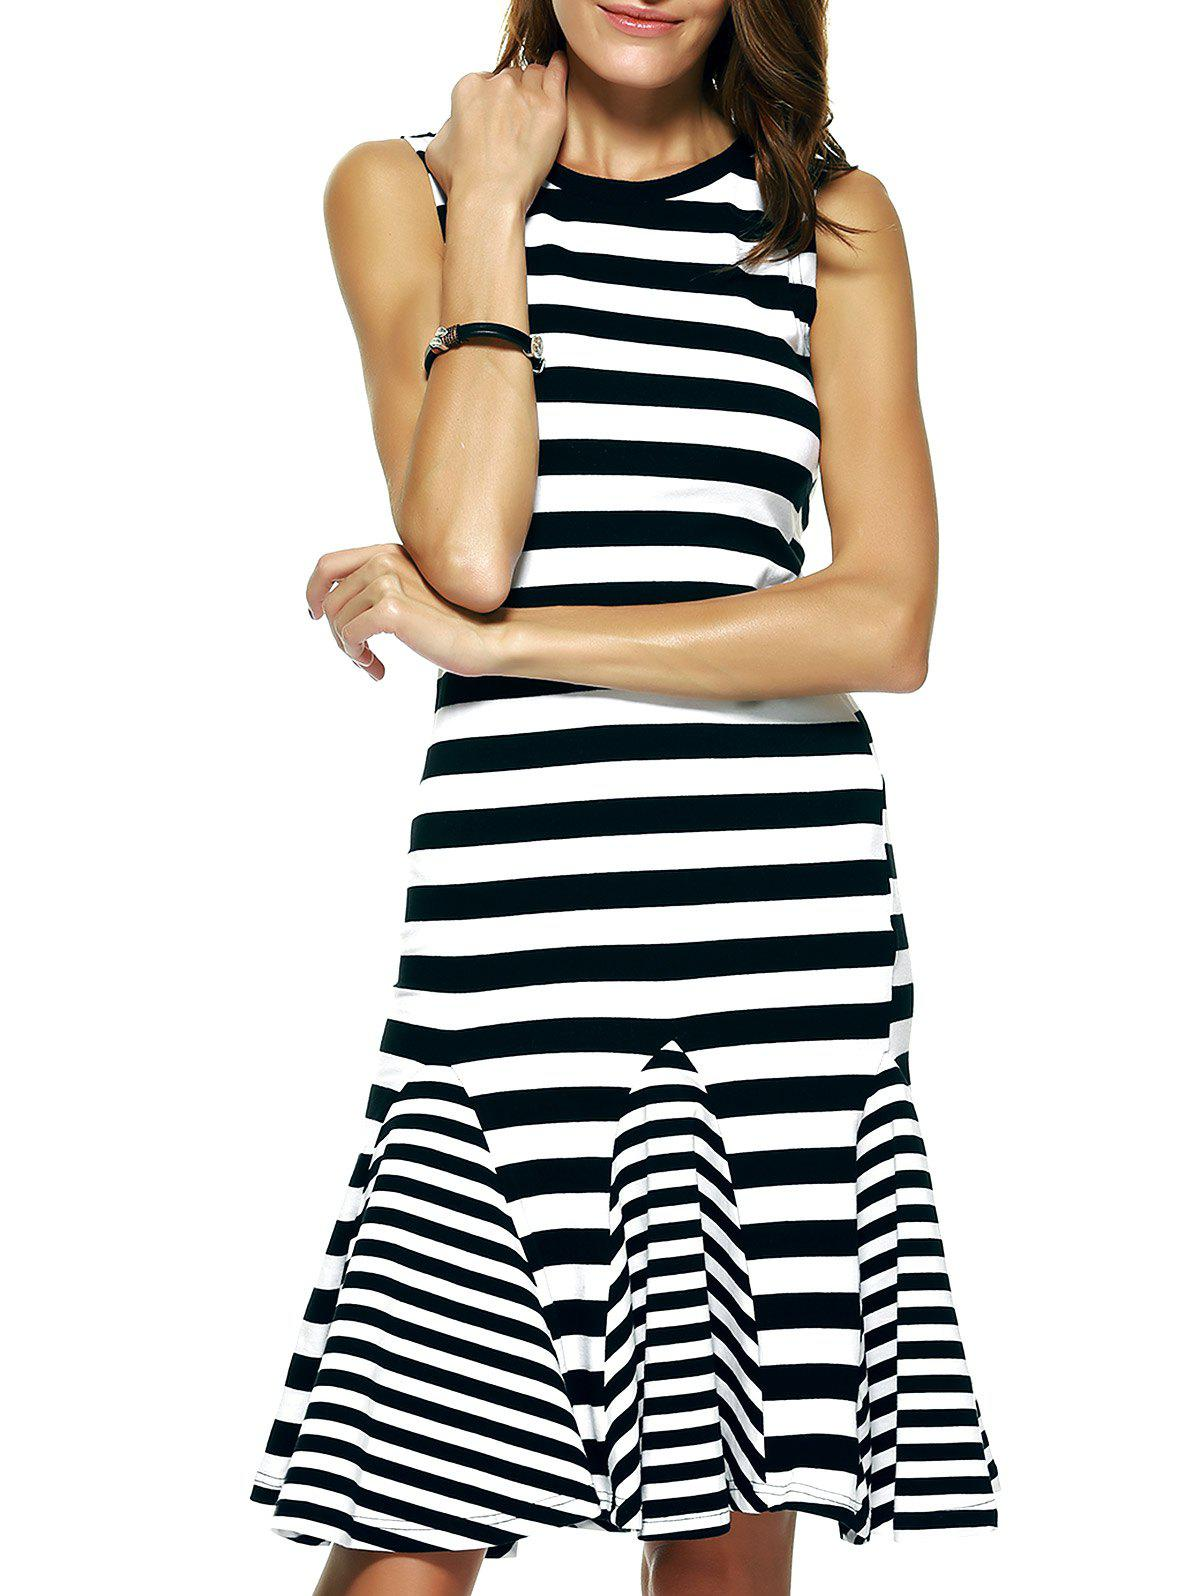 Graceful Women's Striped Fishtail Slimming Dress